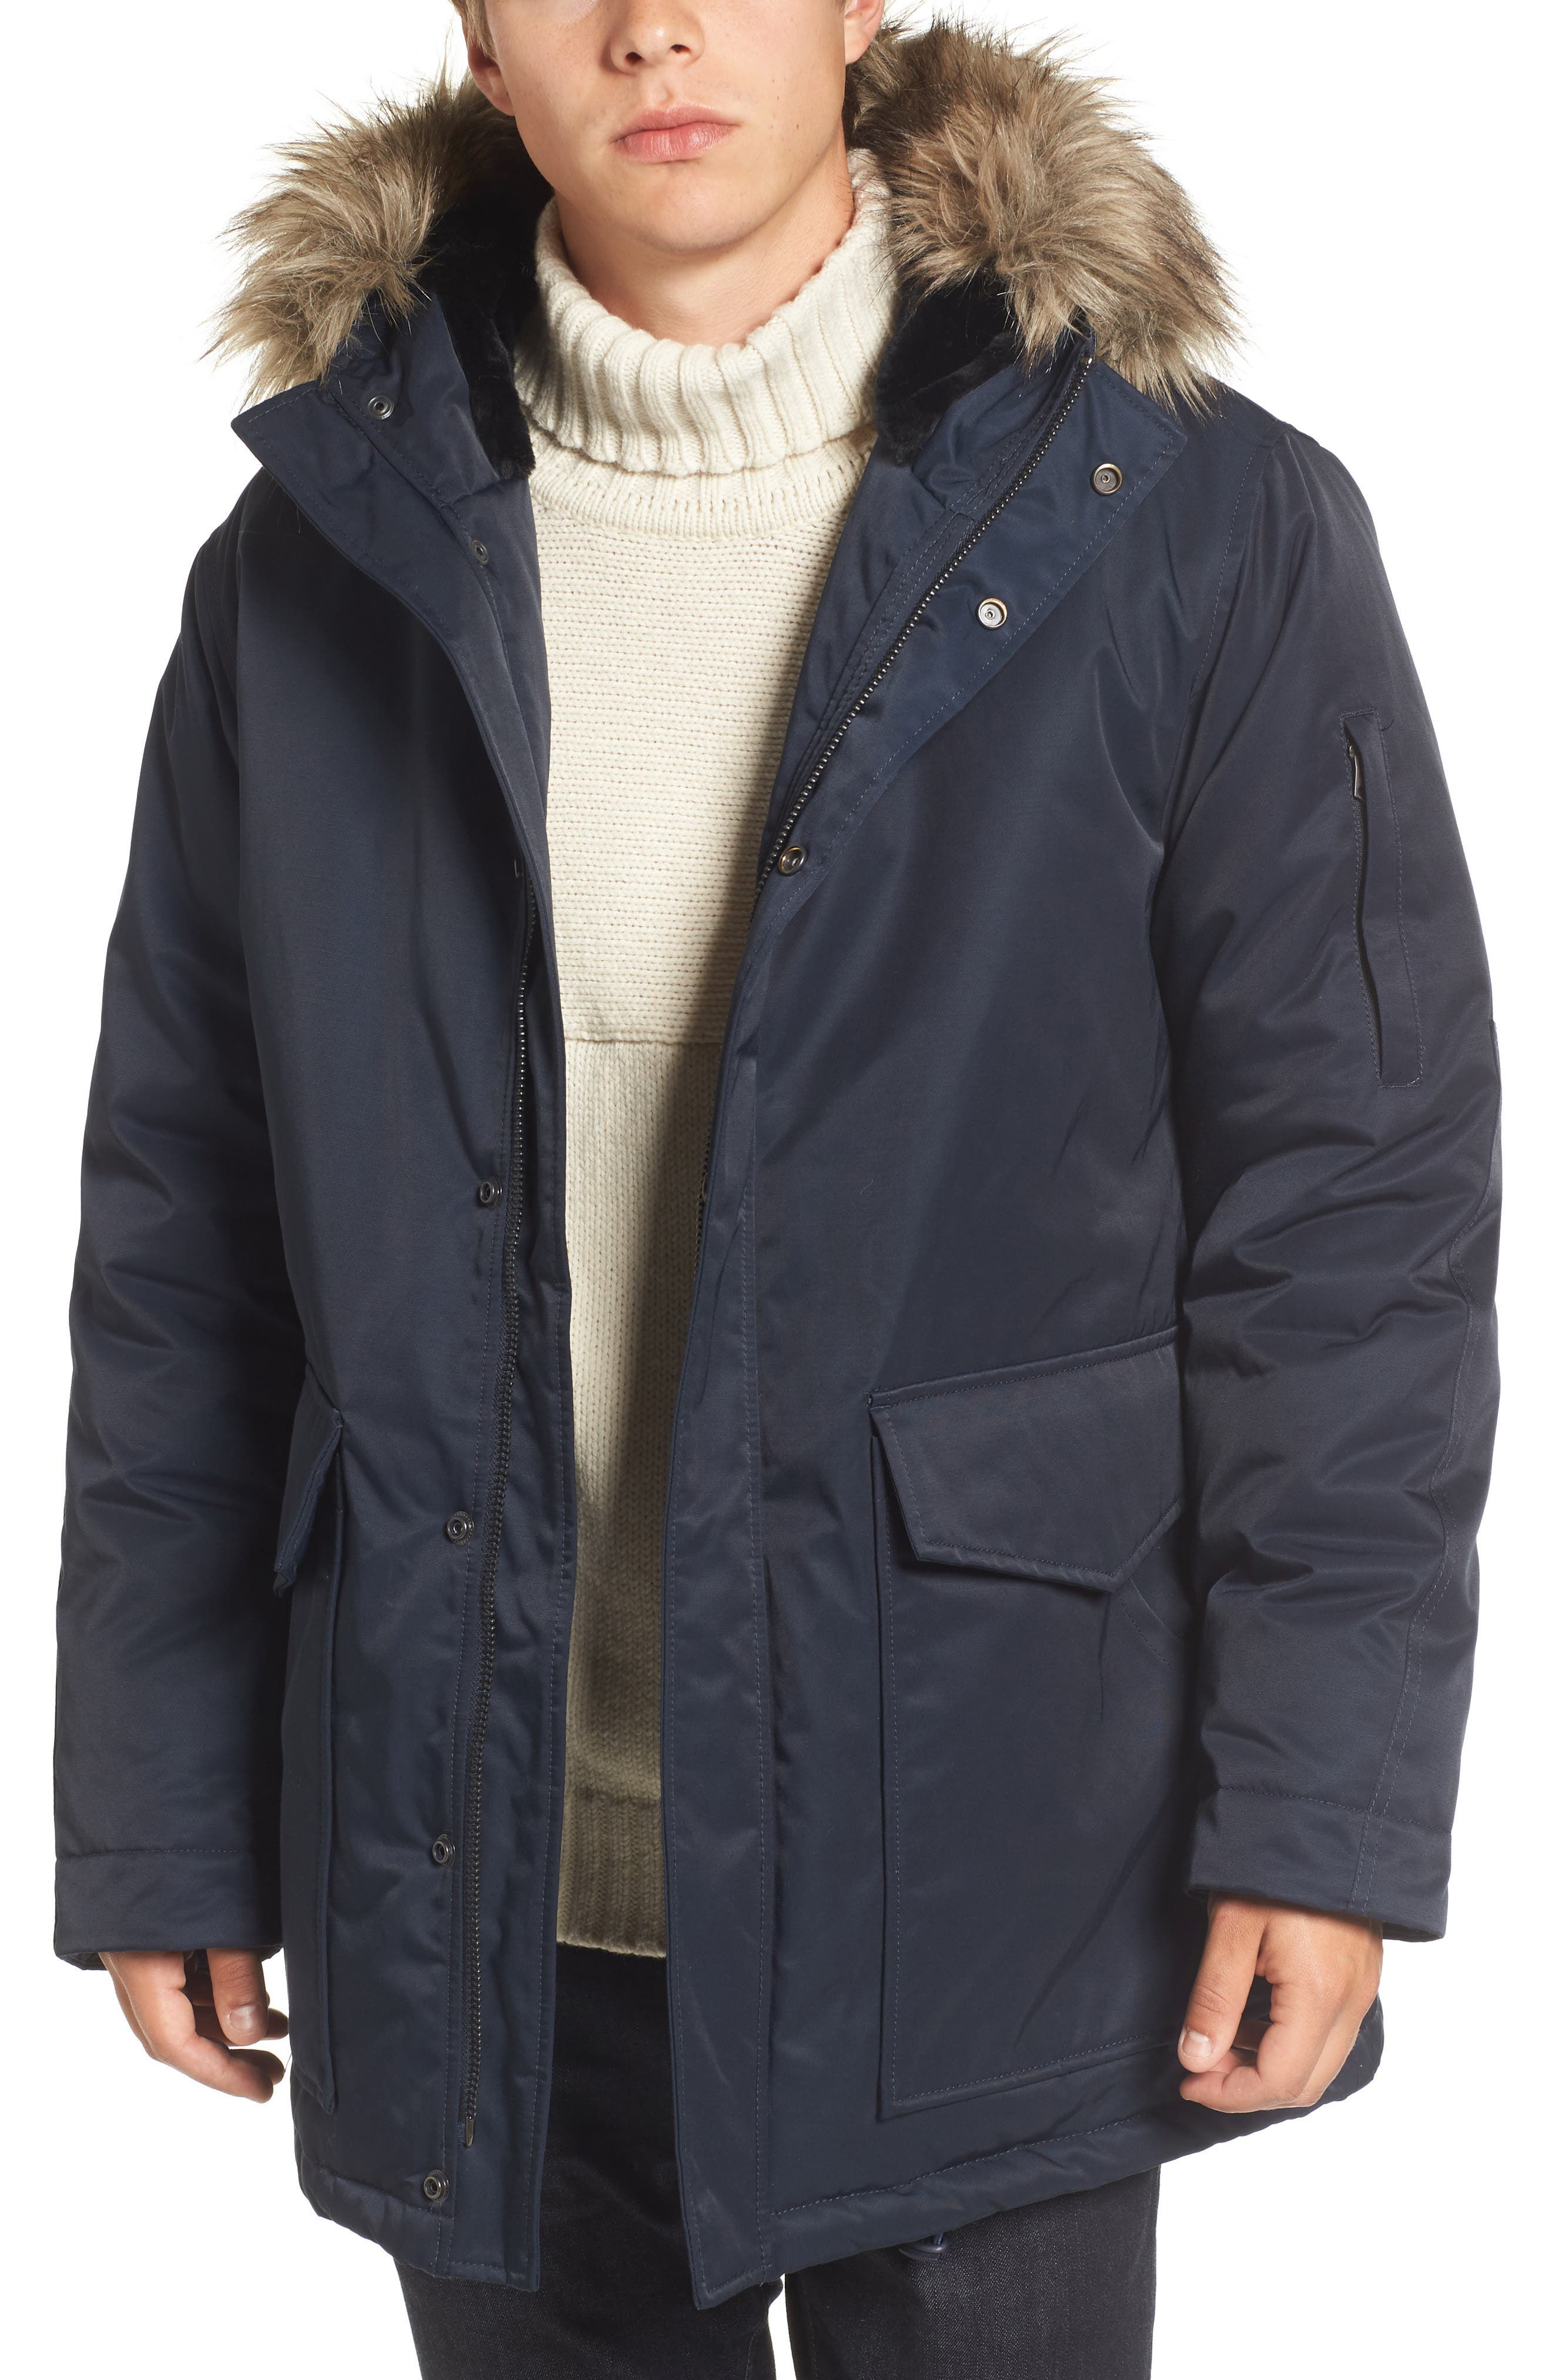 Bystander Hooded Parka with Faux Fur Trim,                             Main thumbnail 1, color,                             Marine Blue